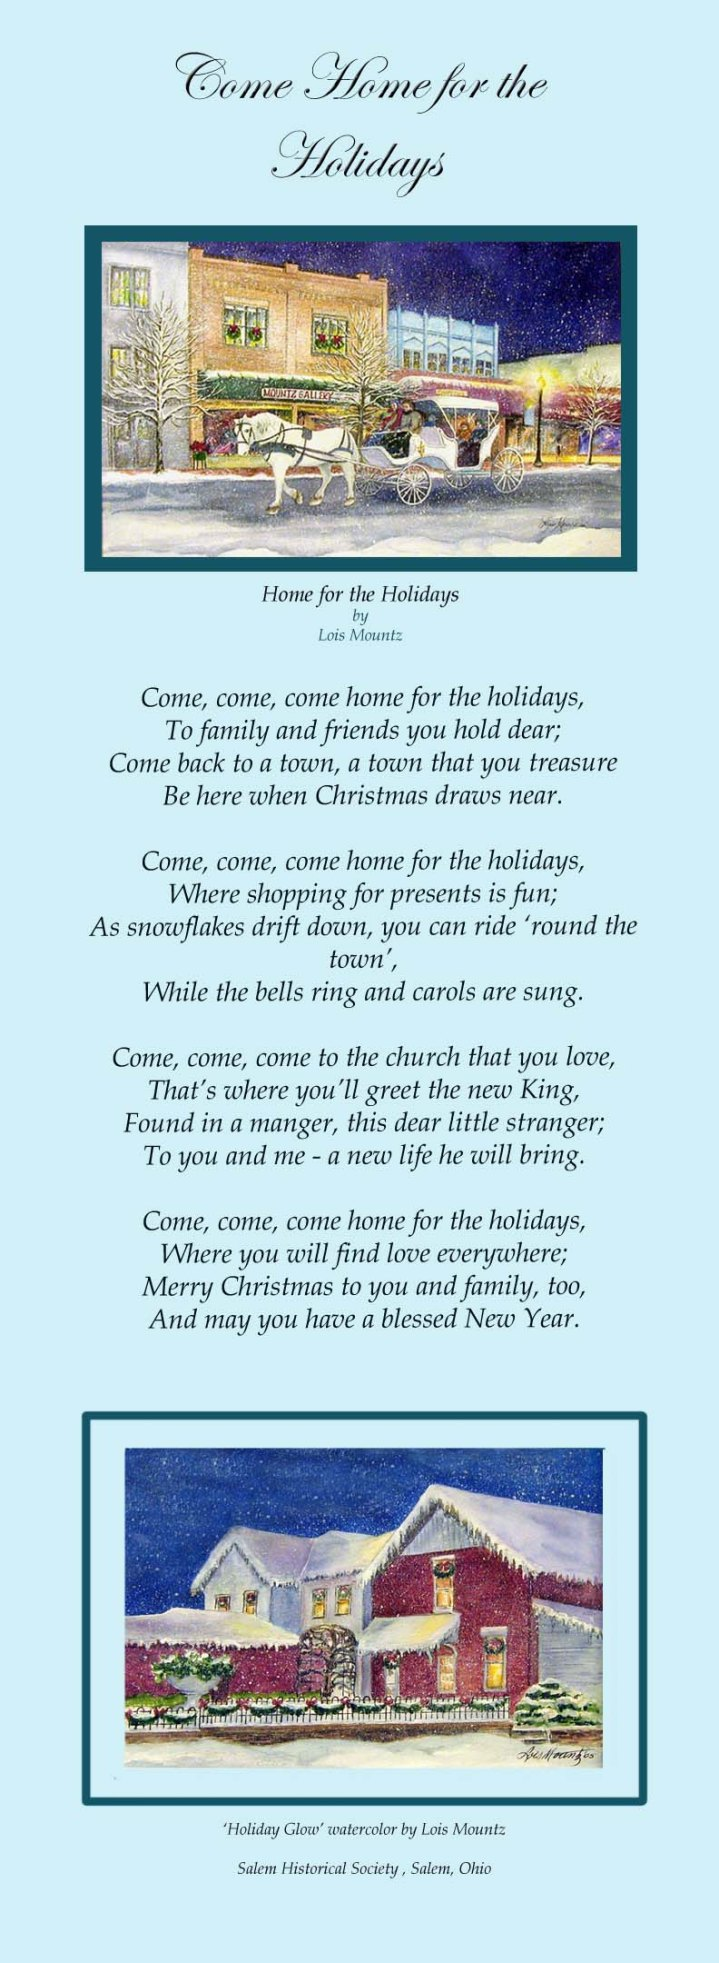 Home for the Holidays copy